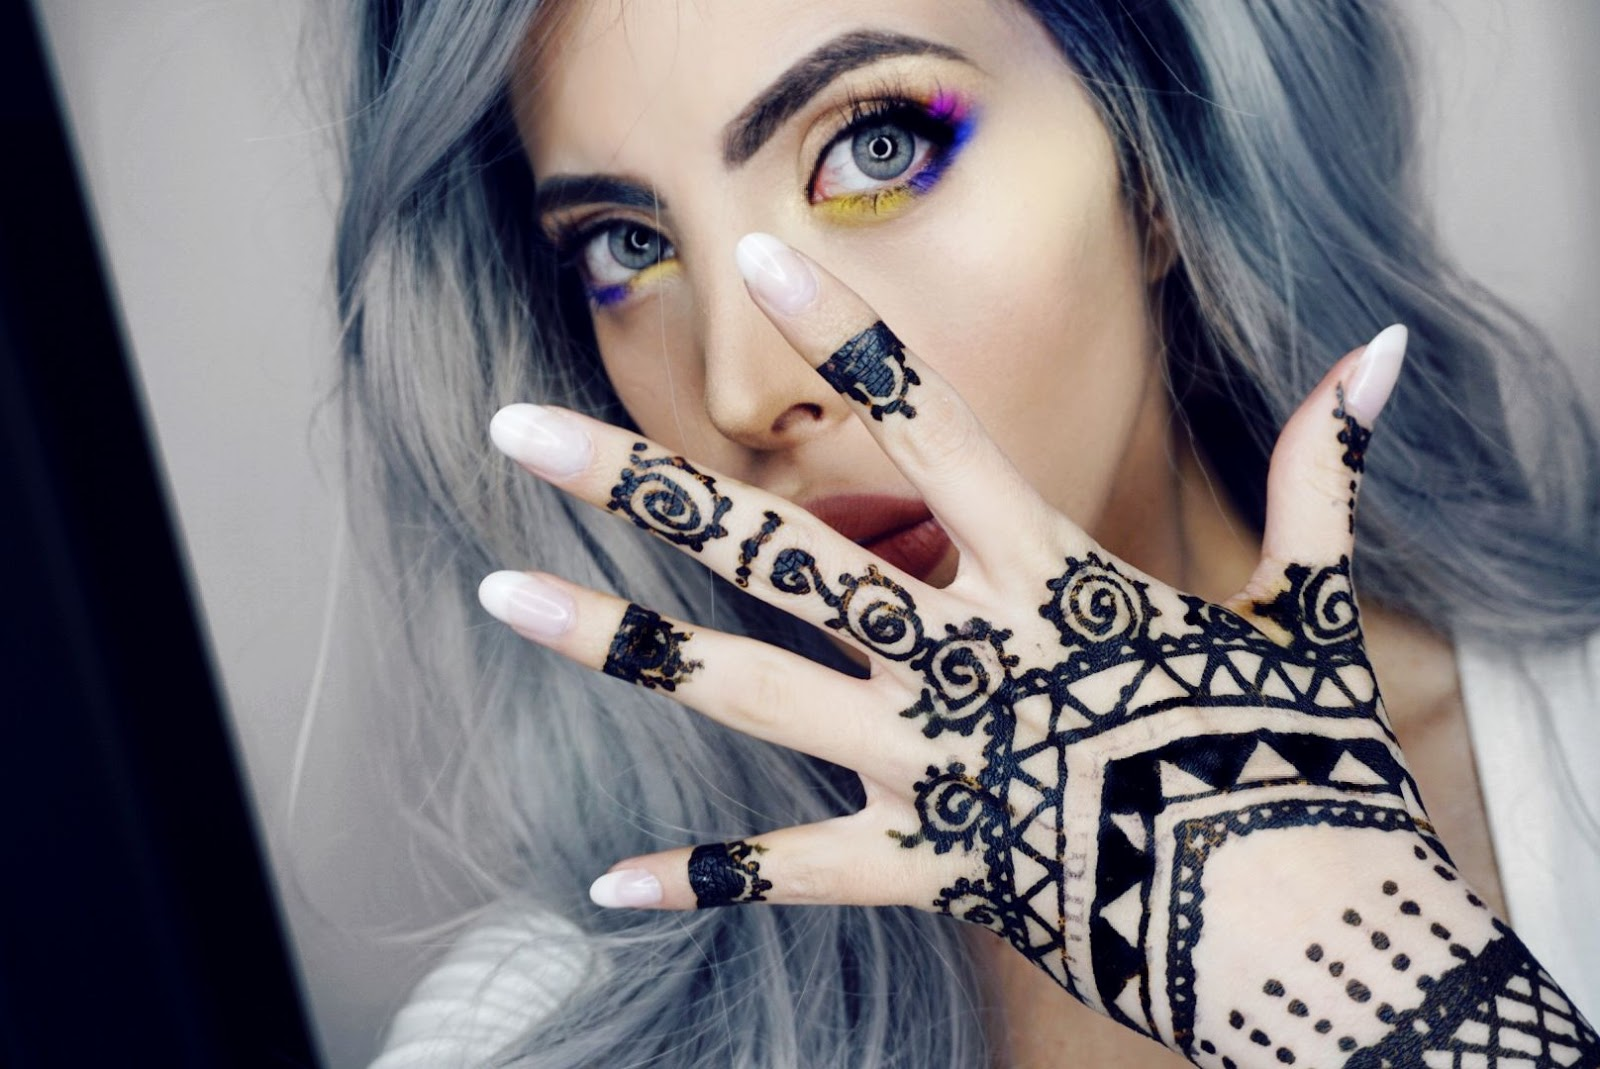 HOW TO CARE FOR A HENNA TATTOO AND MY EXPERIENCE WITH IT AT THE ANGEL BEAUTY PARLOUR